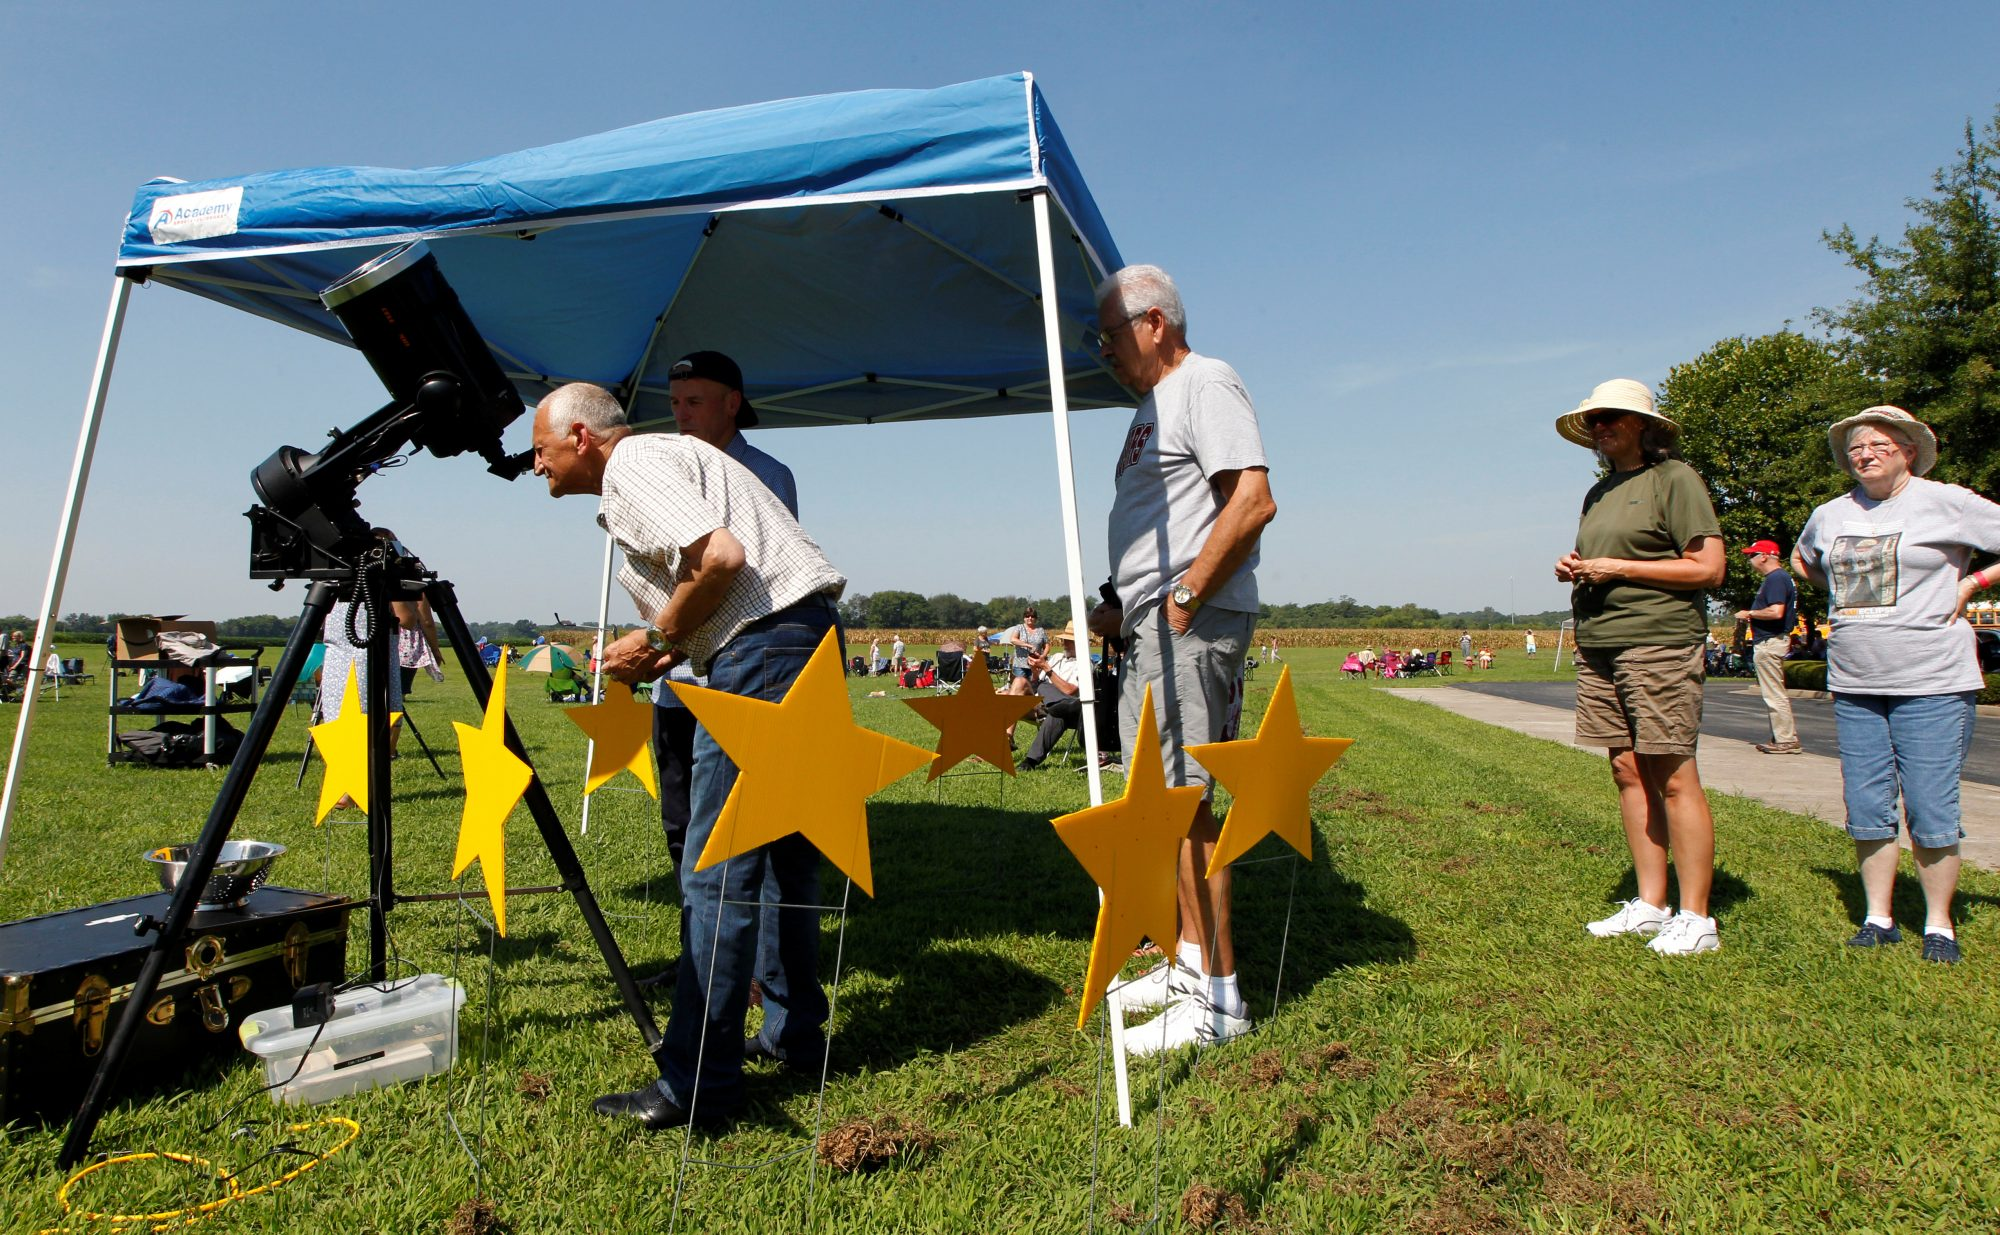 Eclipse fans stand in line to look through a telescope as they wait for the beginning of the solar eclipse at the James Bruce Convention Center in Hopkinsville, Kentucky. Photo by John Sommers II/Reuters